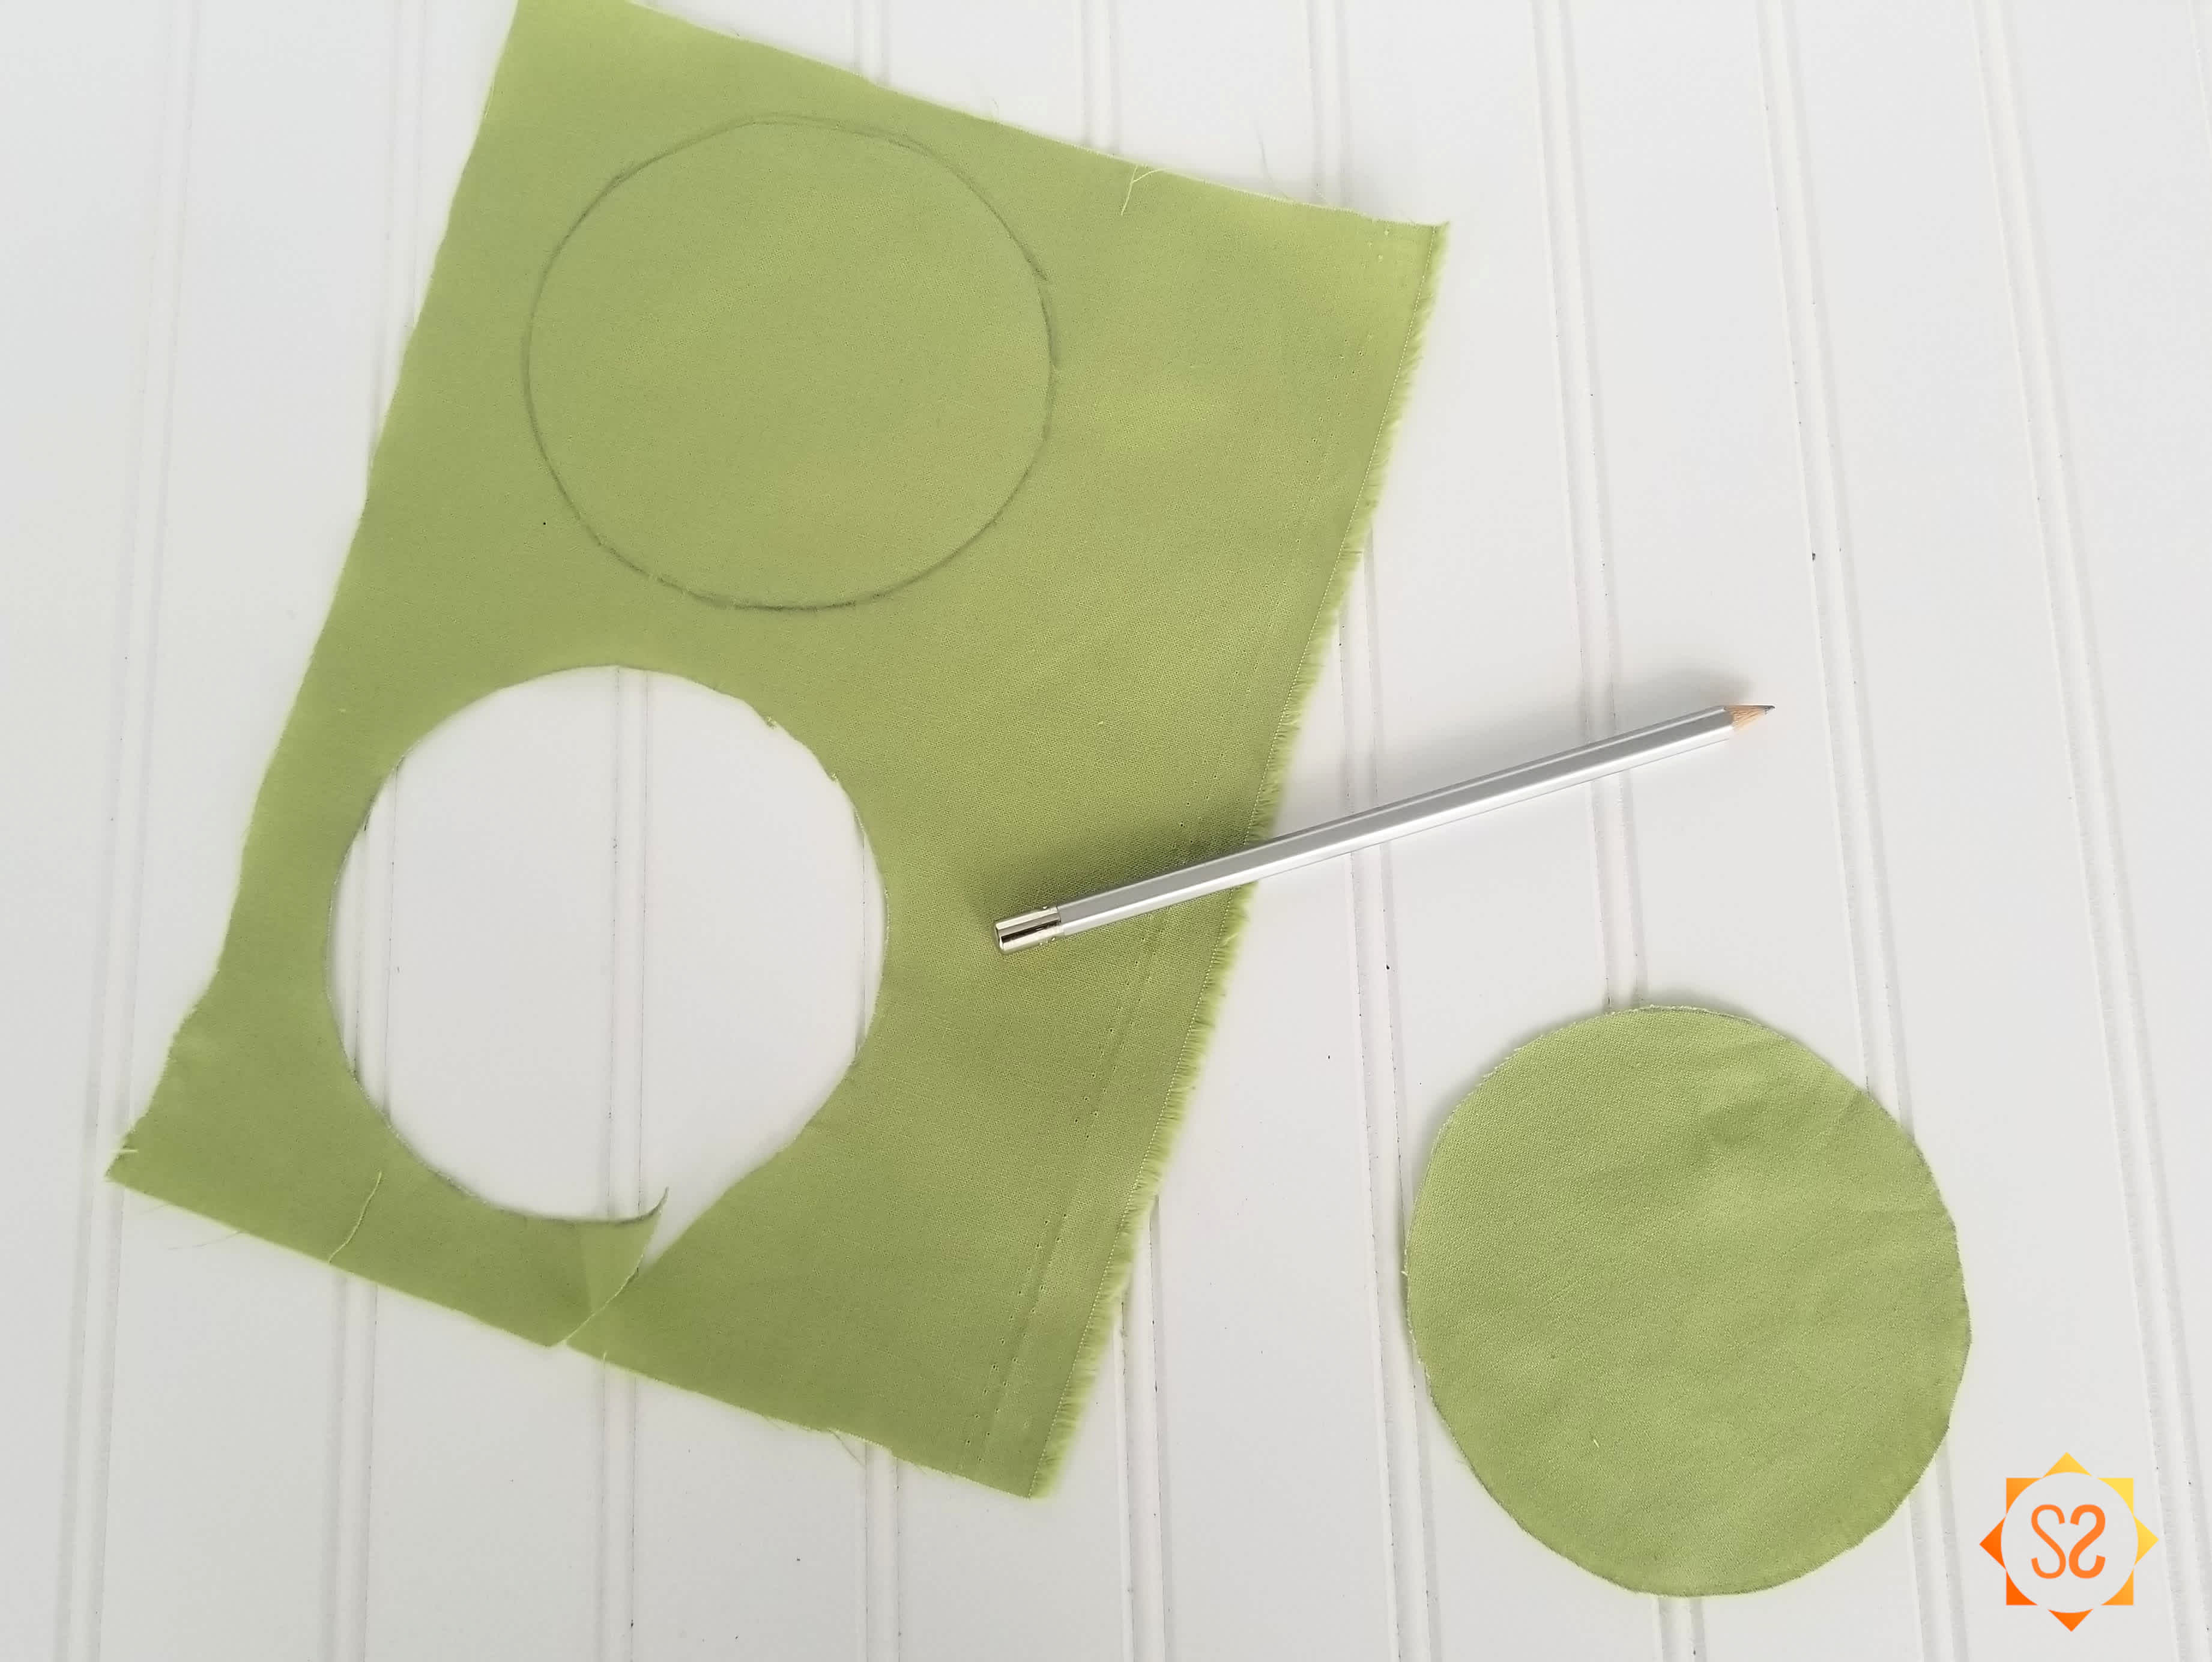 Yellow-green fabric with a circle cut out and another circle drawn on it.